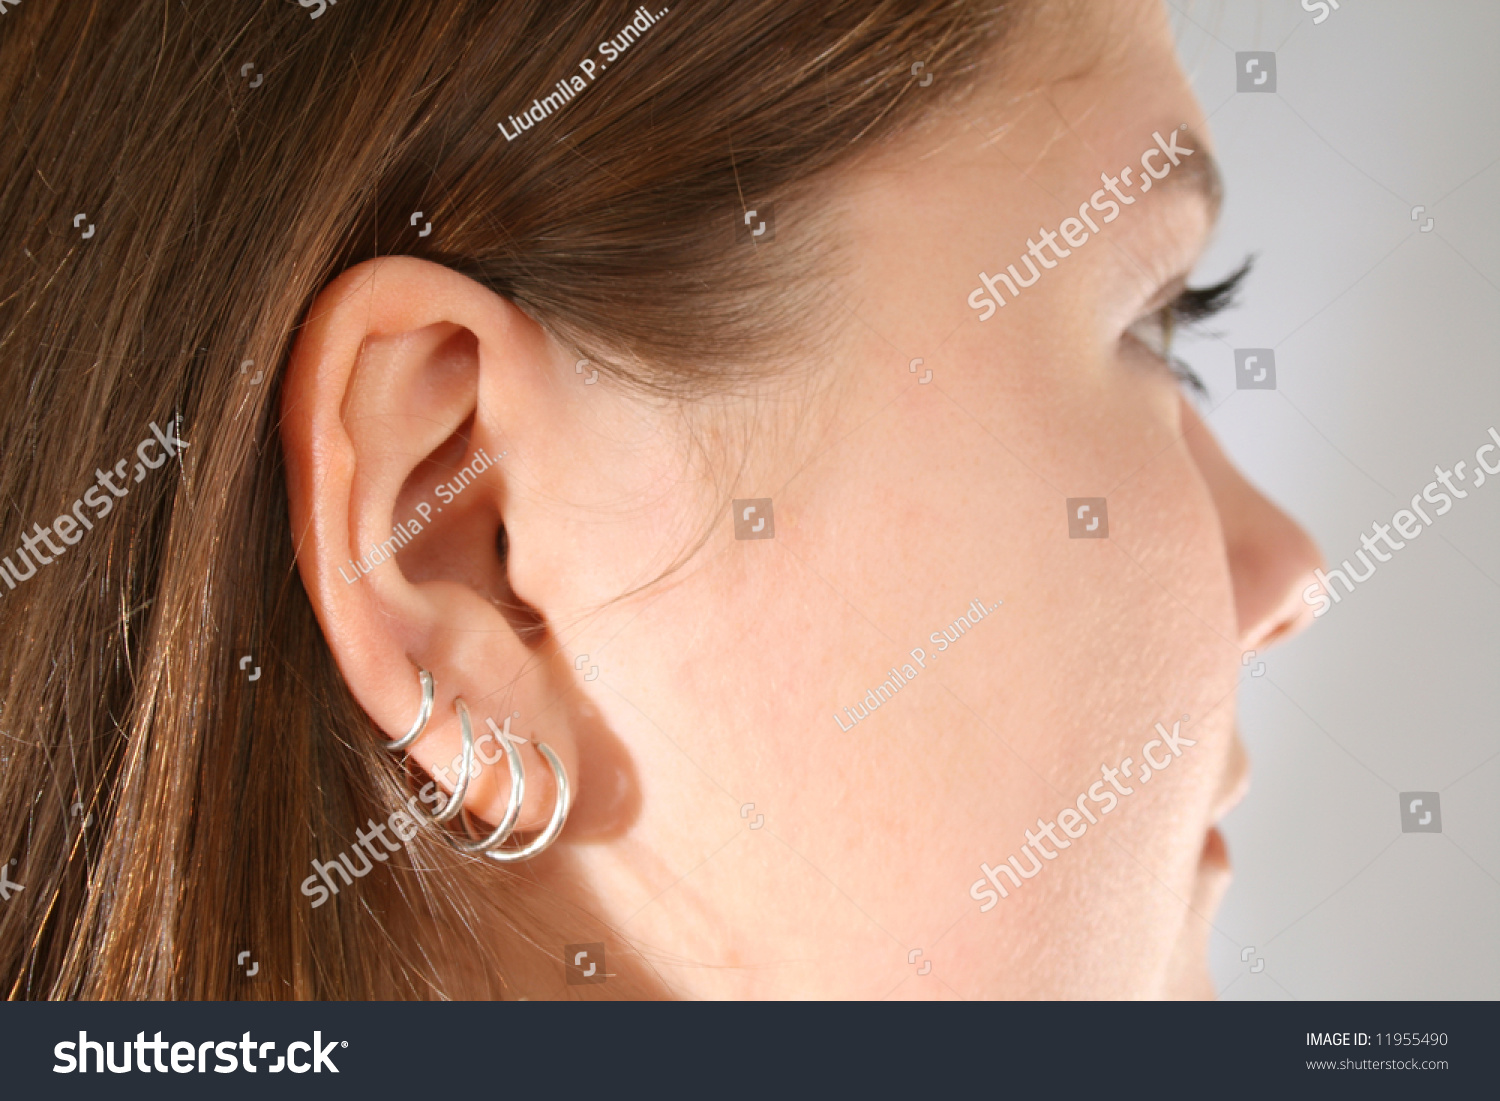 Closeup Multiple Ear Piercings On Young Stock Photo (Edit Now ...